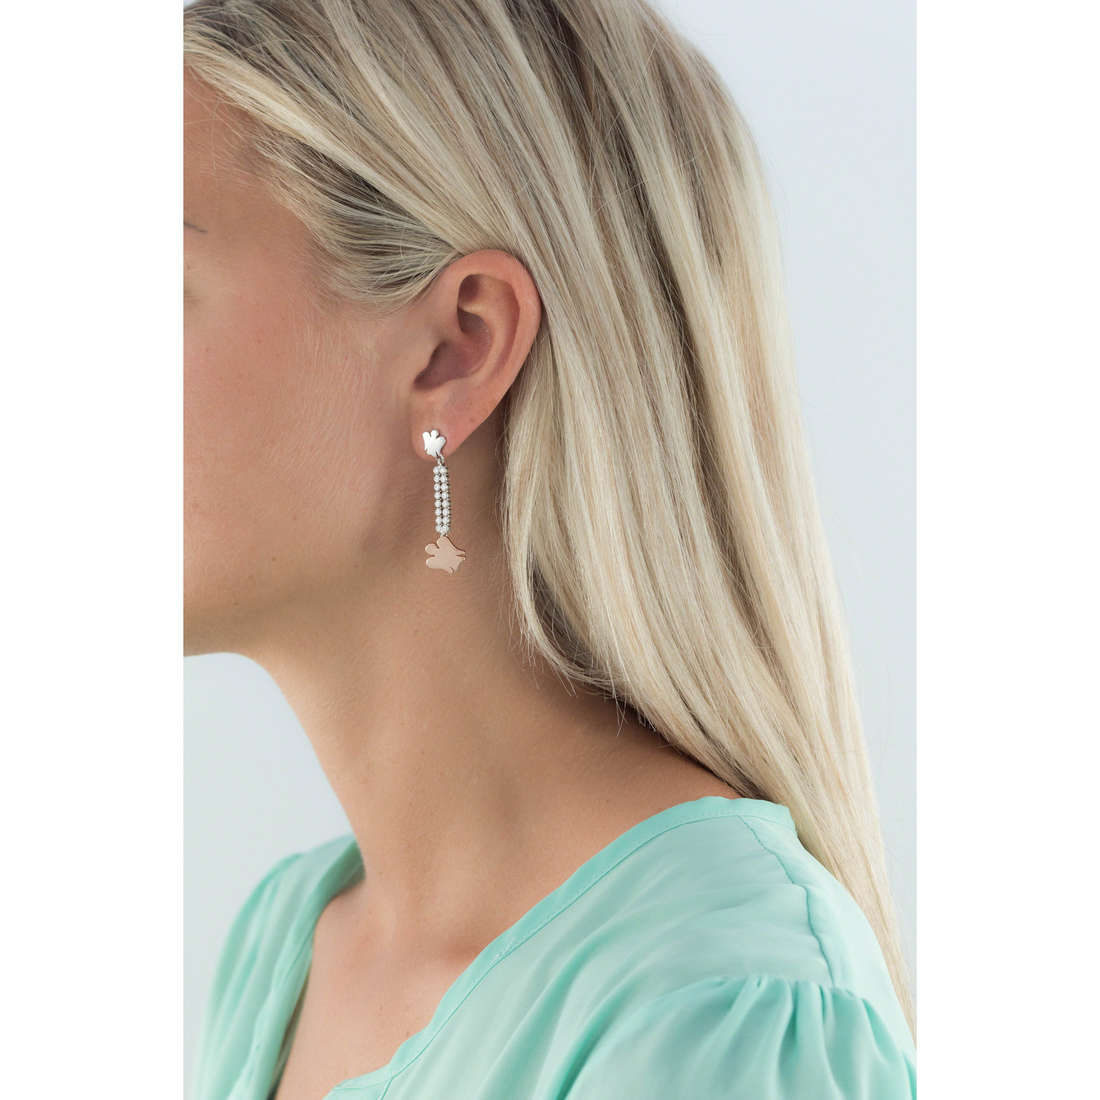 Giannotti earrings Chiama Angeli woman GIA249 indosso